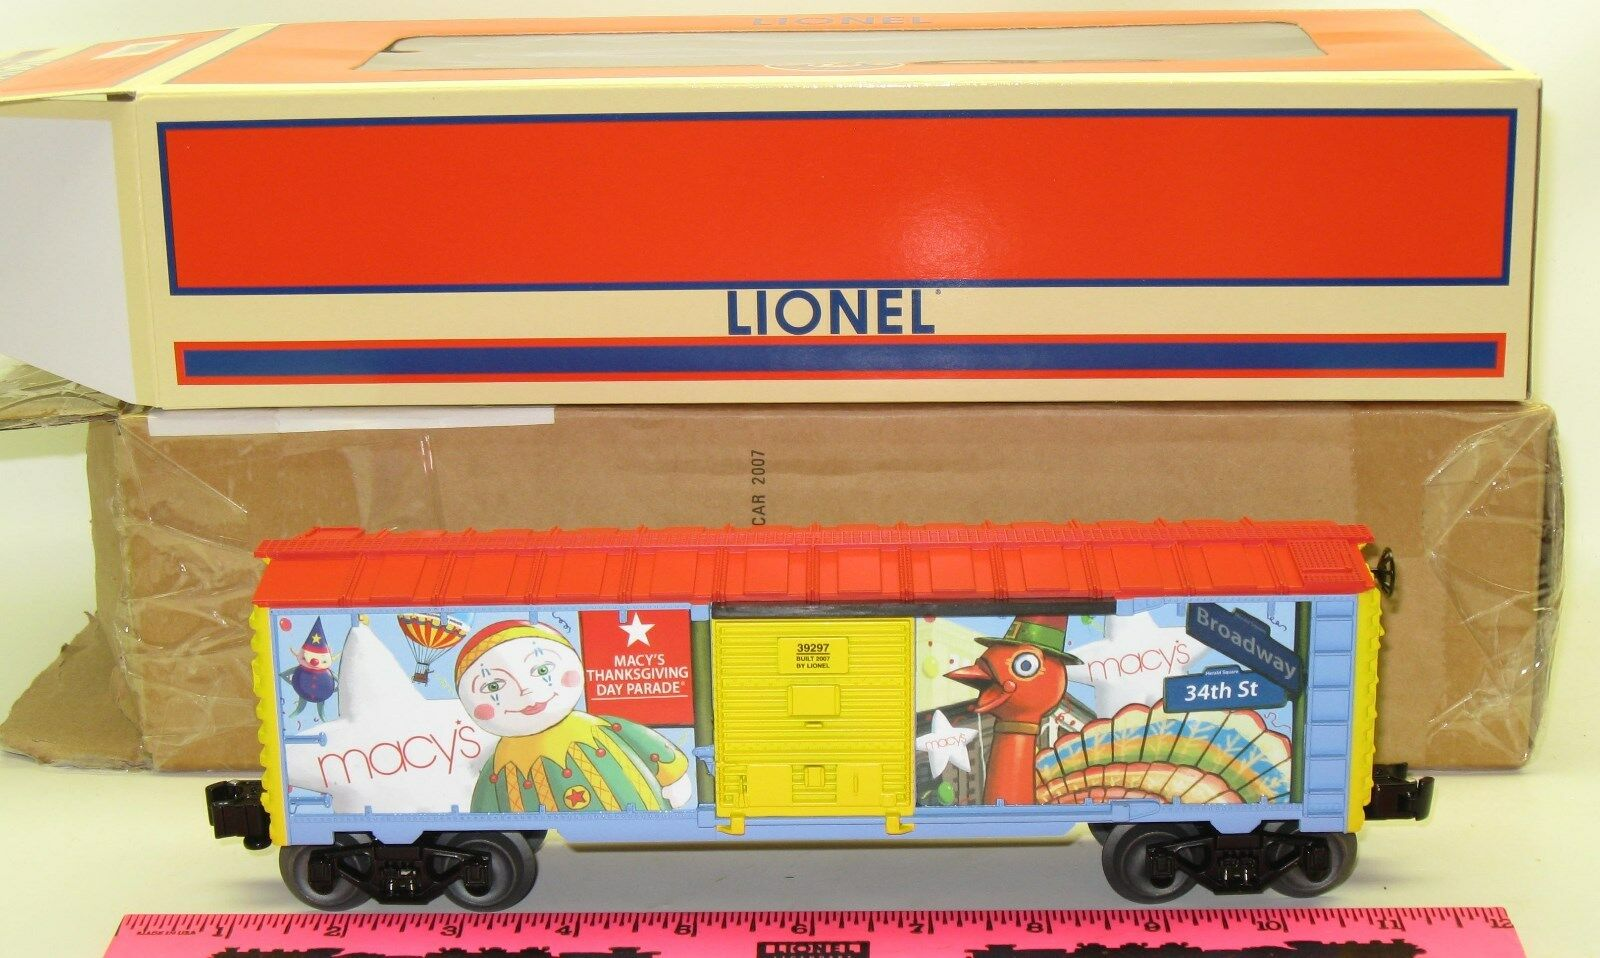 Lionel New 6-39297 Macy's boxcar 2007 with Brown factory